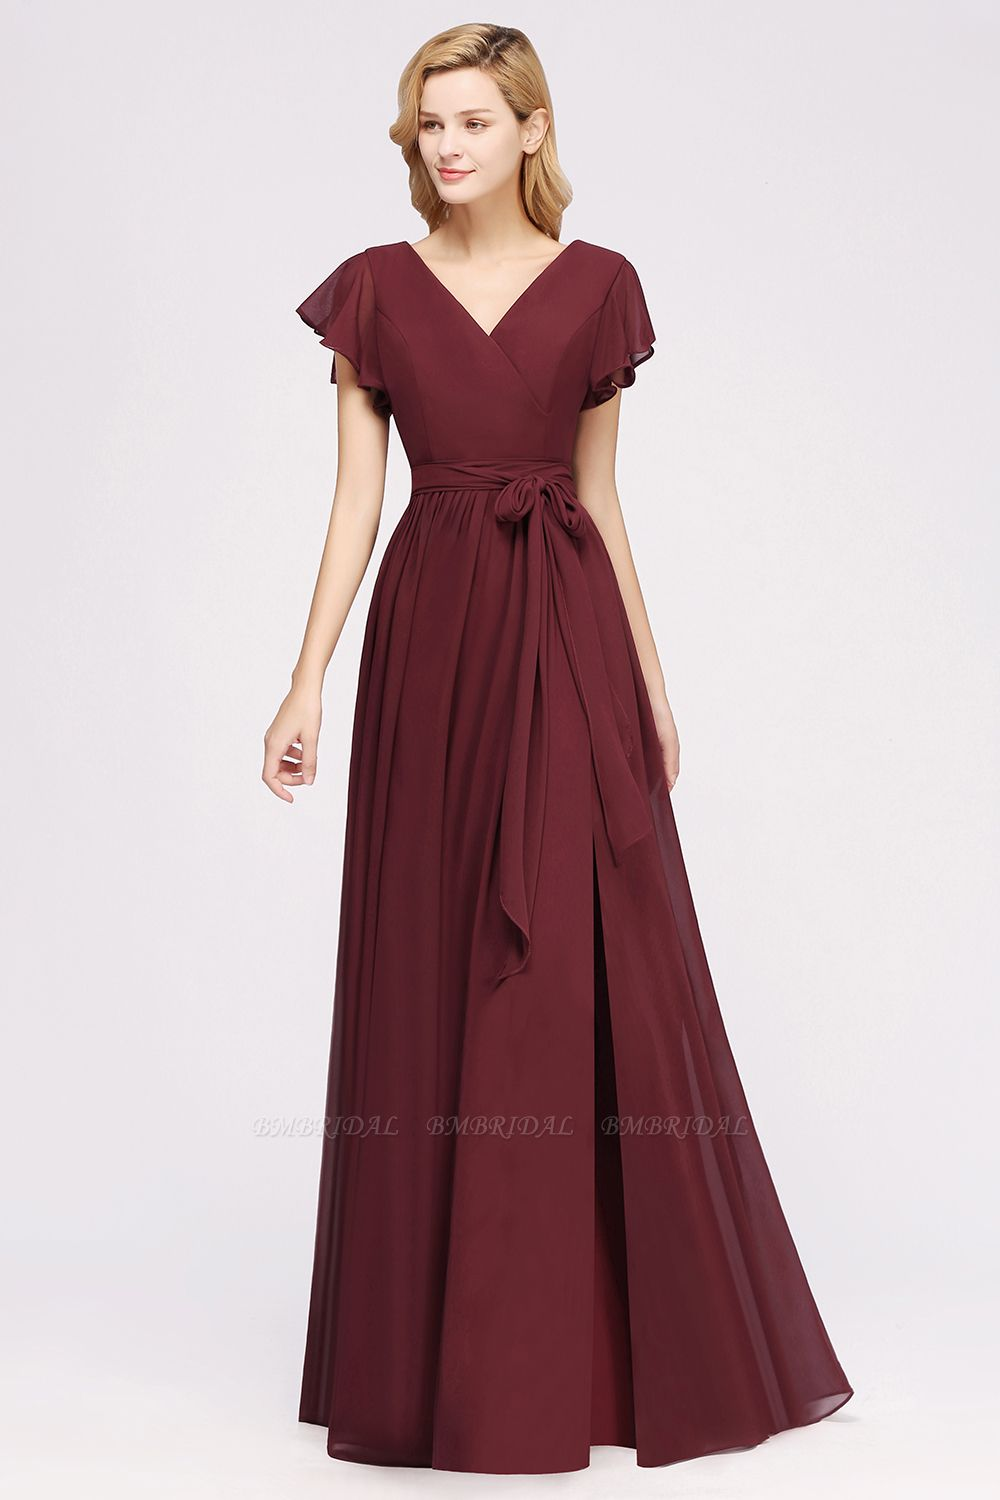 Burgundy V-Neck Long Bridesmaid Dress With Short-Sleeves